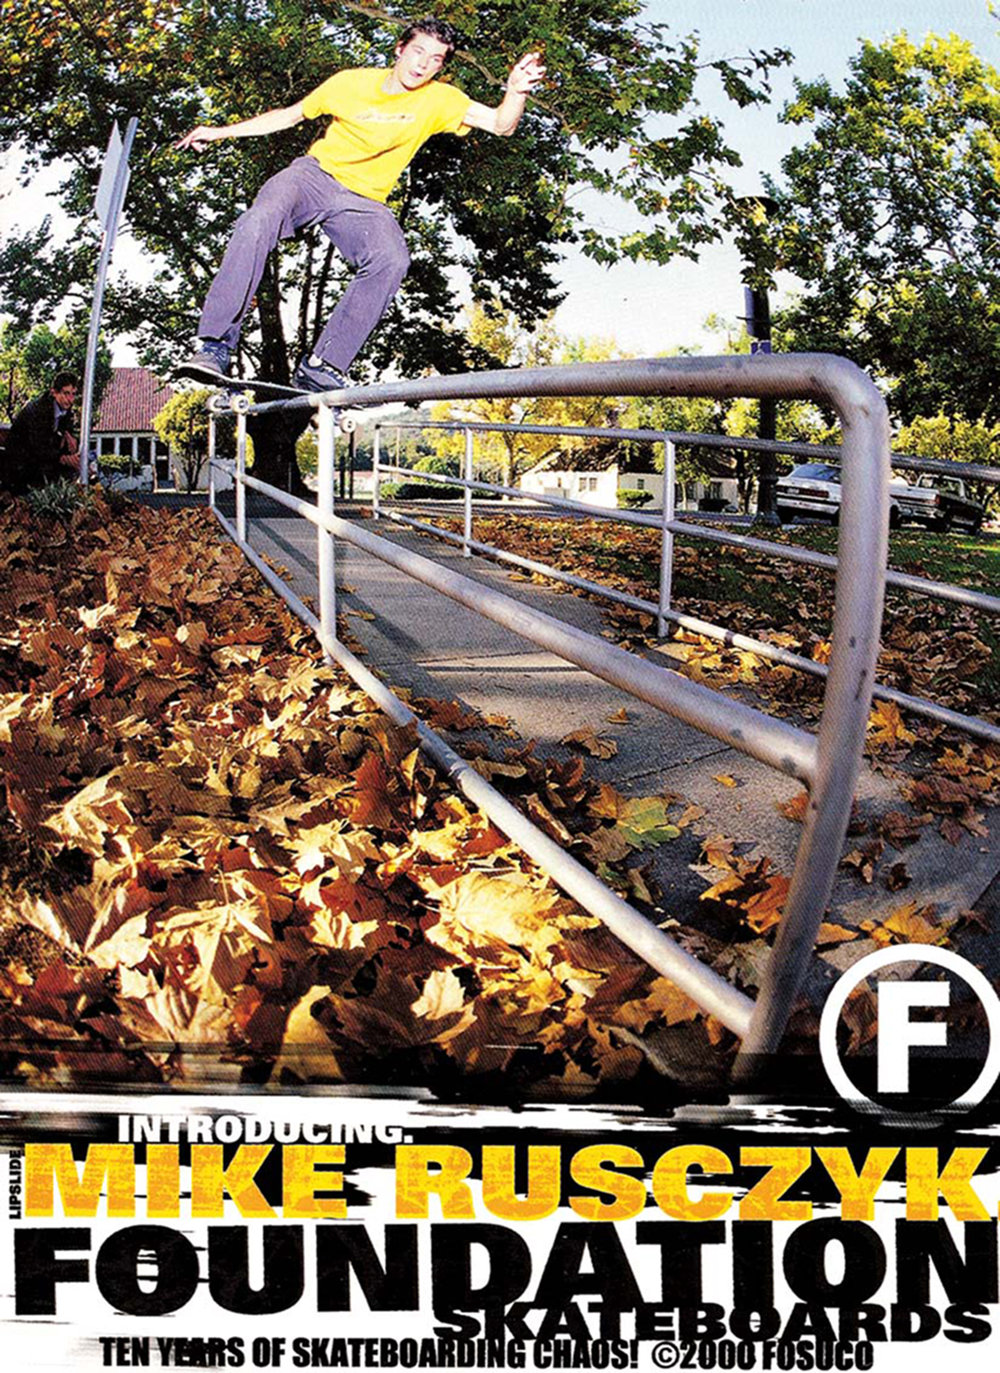 1999, Front Lipslide - Introducing - First Foundation ad Photo: Sean Dolinsky